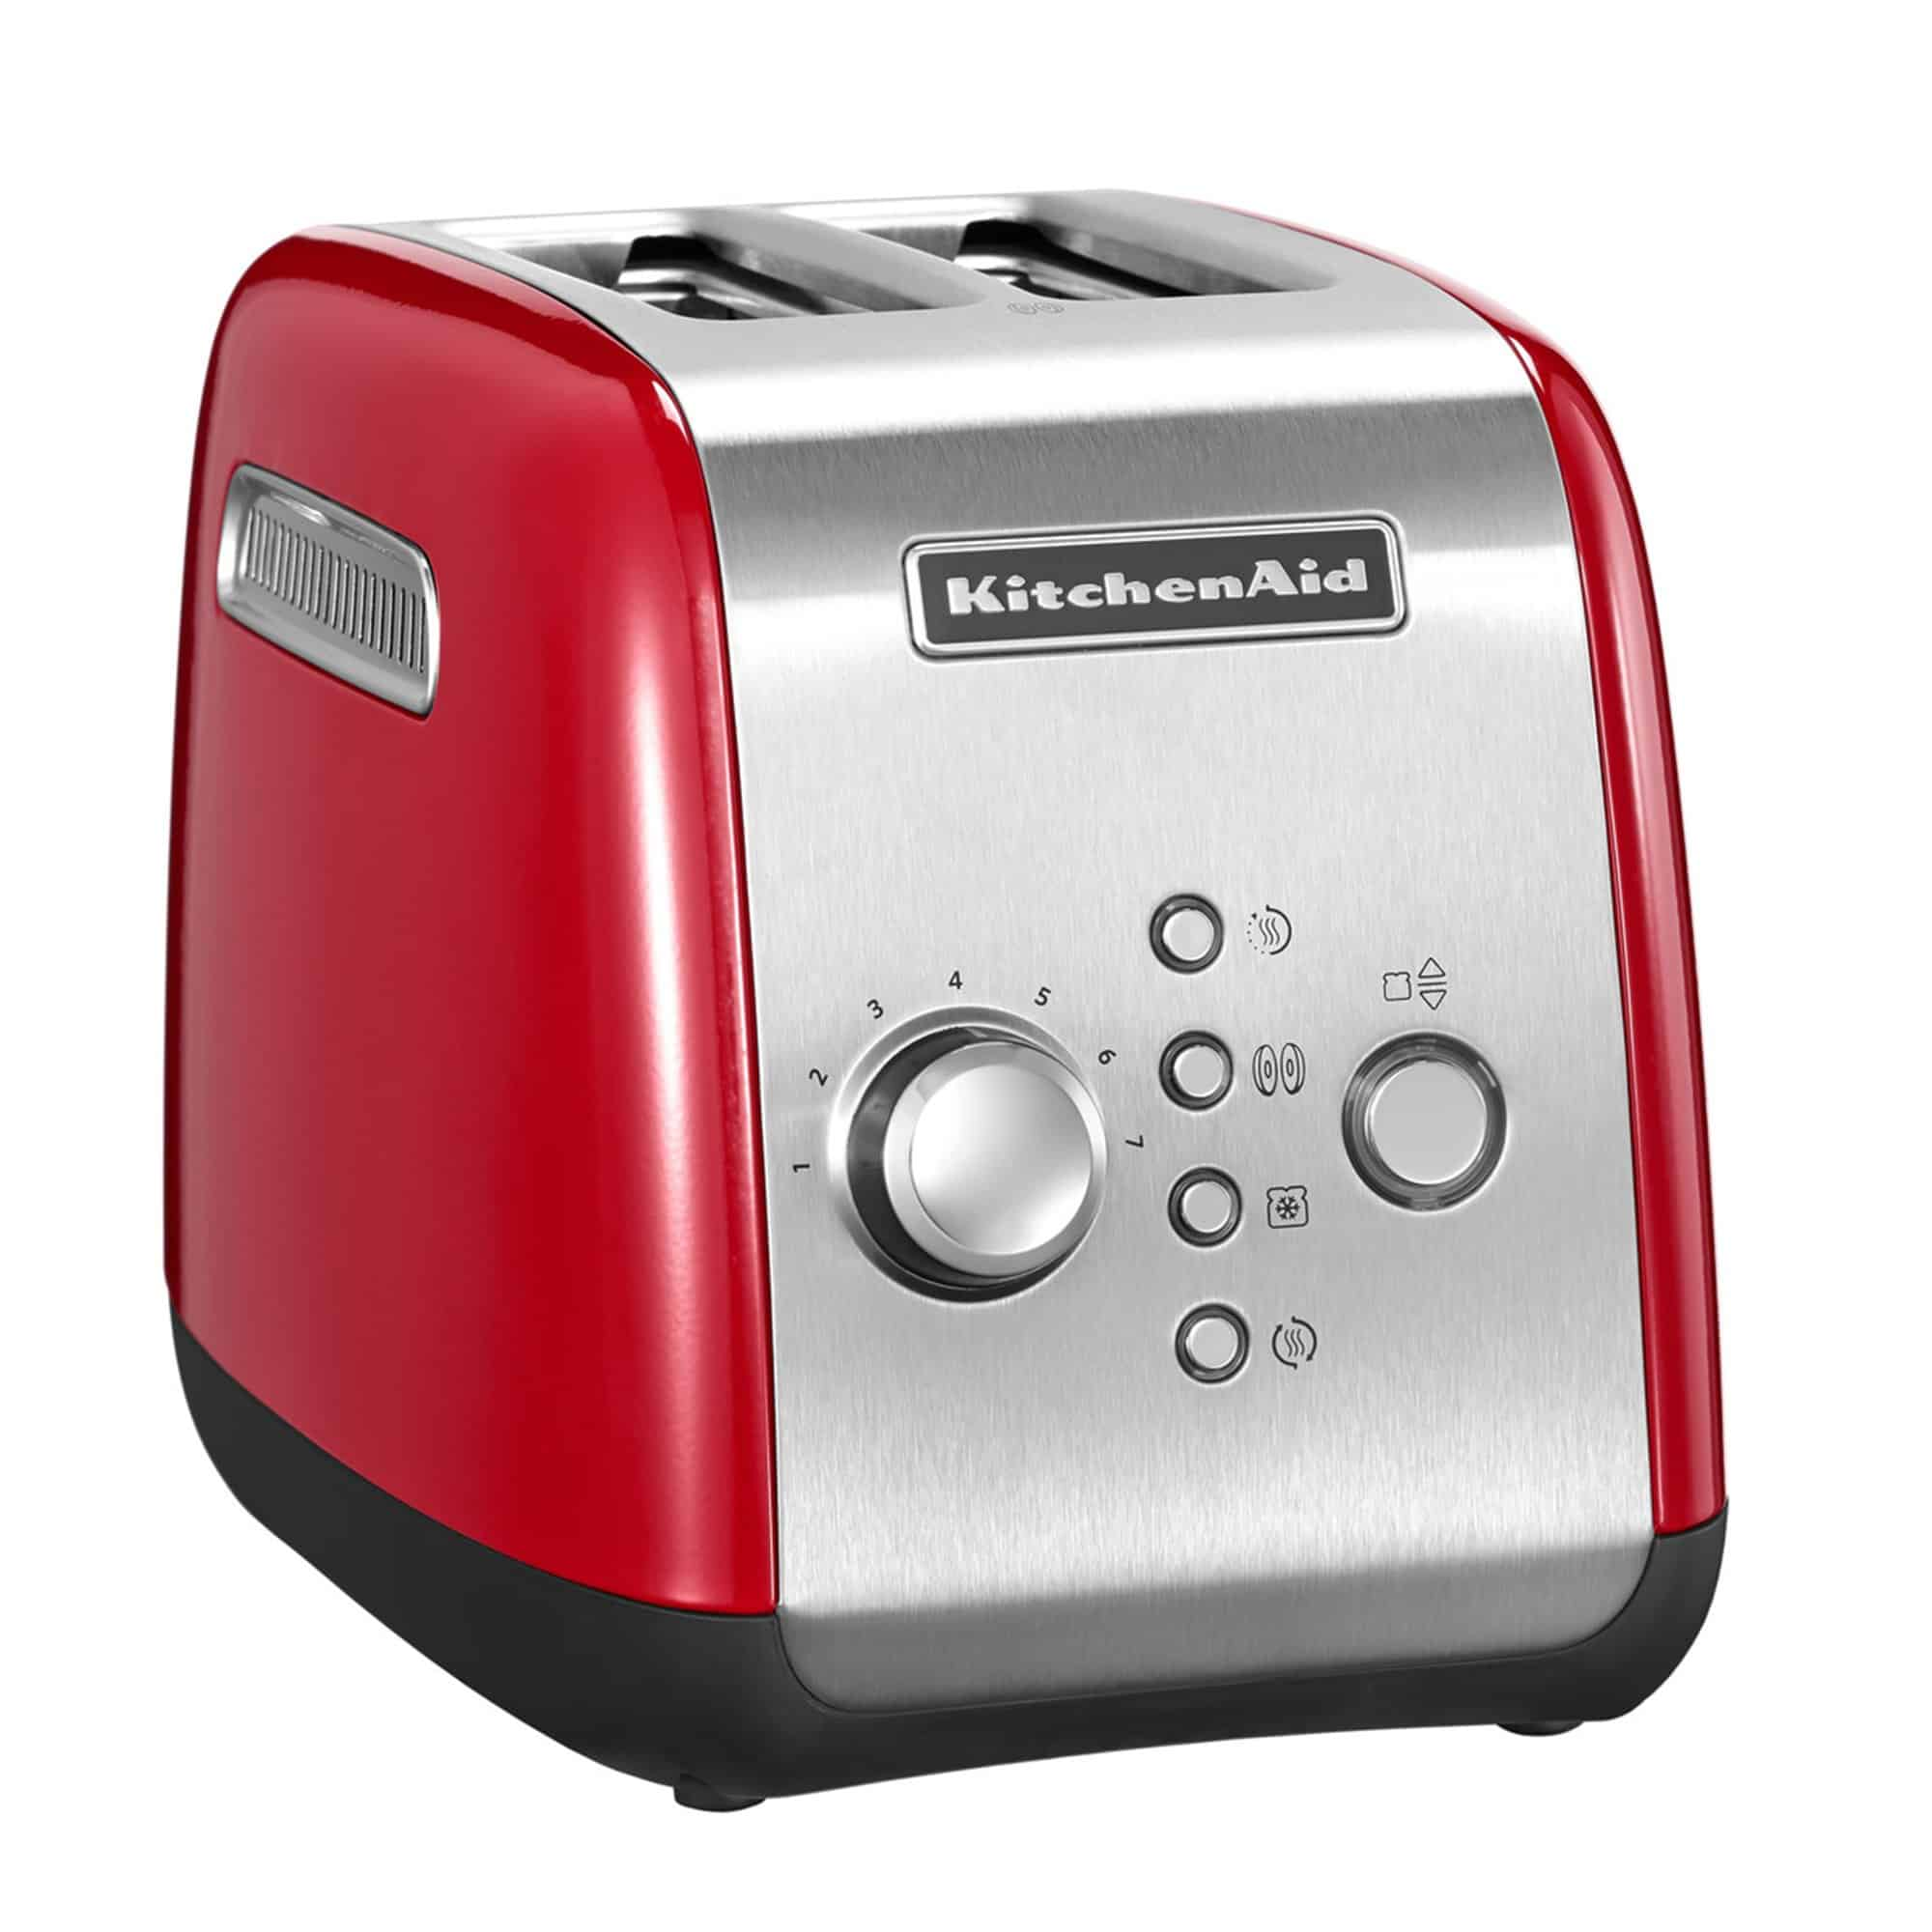 savori urbane kotanyi toaster-2-sloturi-1100w-empire-red-kitchenaid